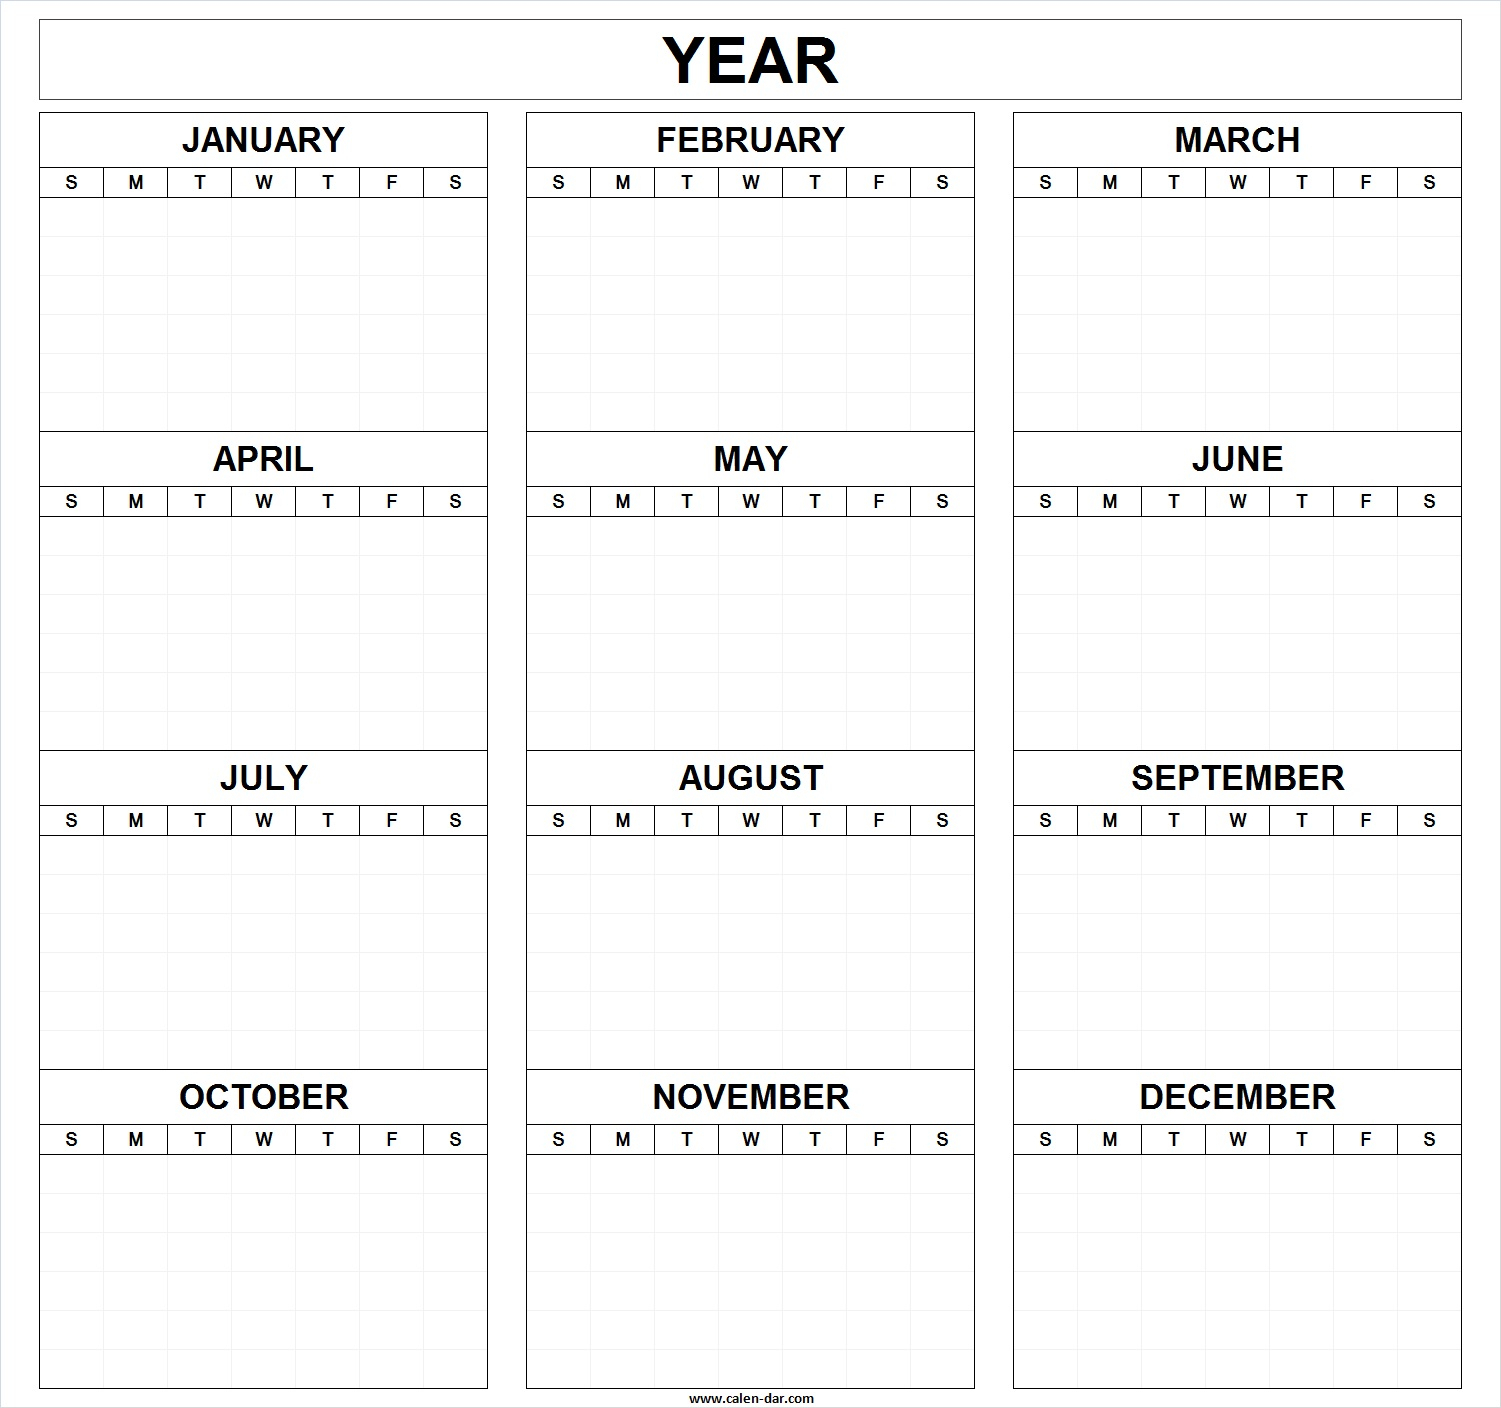 Printable Blank Year Calendar Templatemonth | Editable Calendar for Blank Printable Calendars Yearly